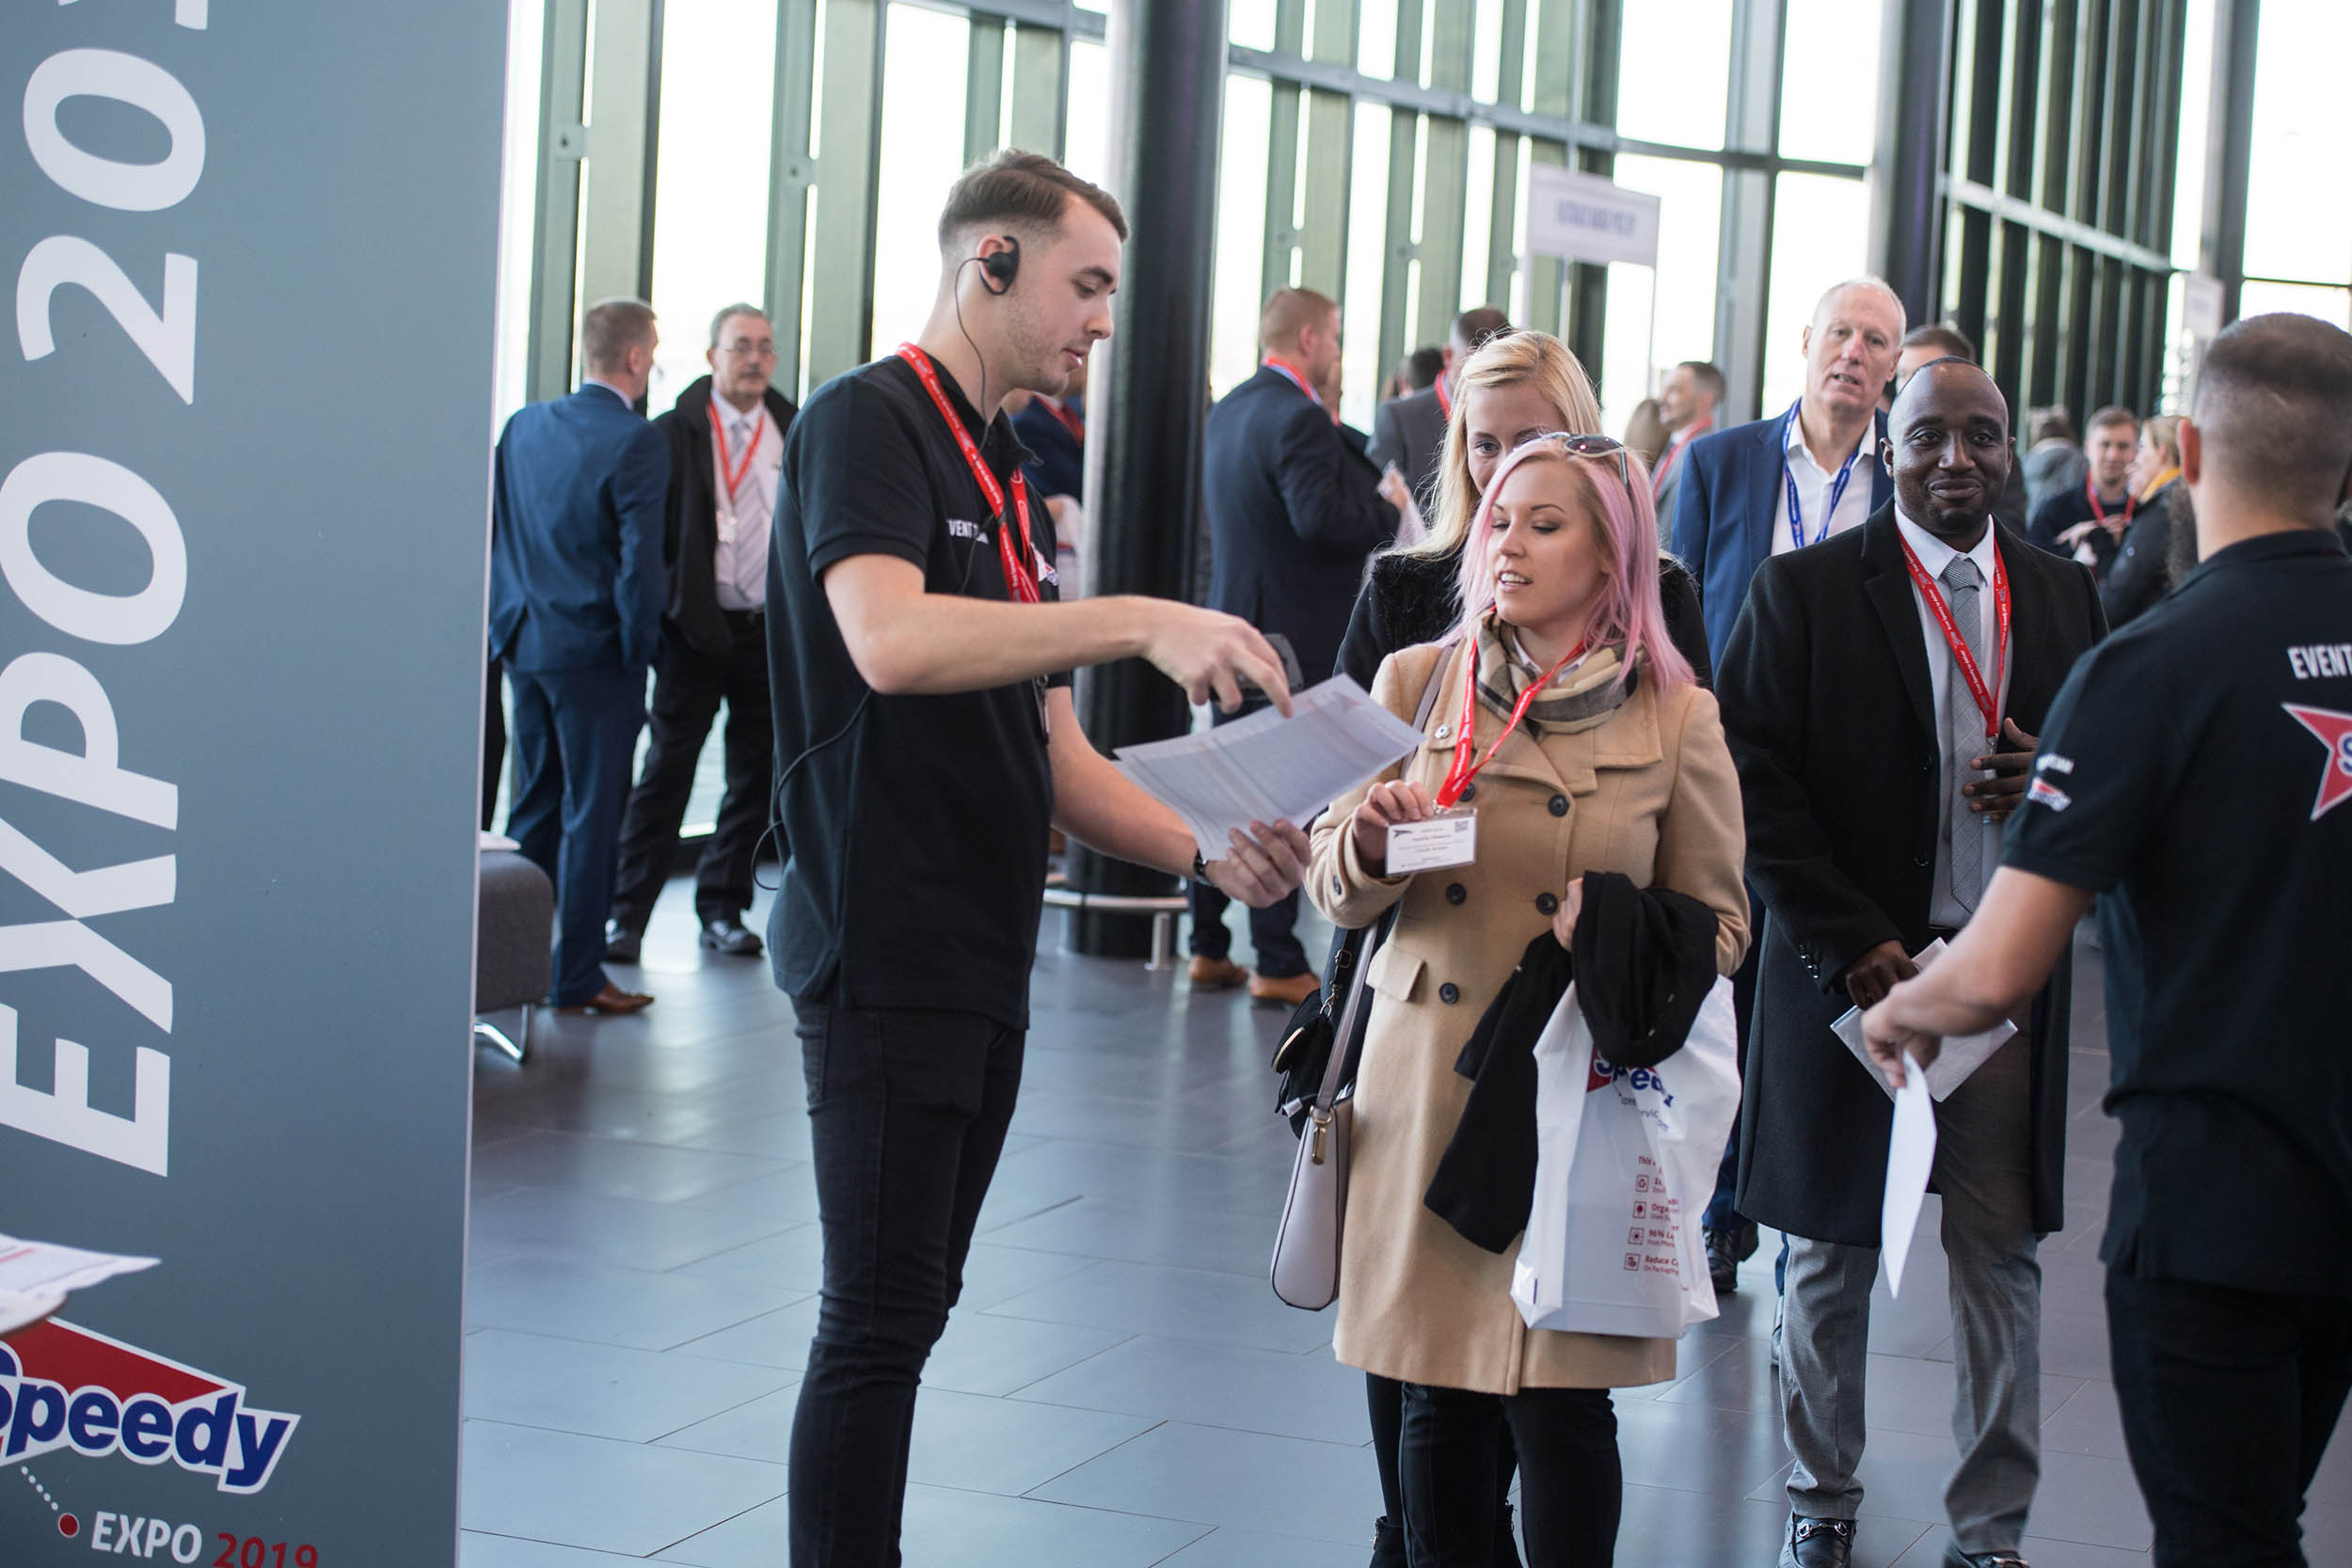 Speedy Services Expo Conference at At ACC Convention Centre Liverpool Manchester Photographer conference photography